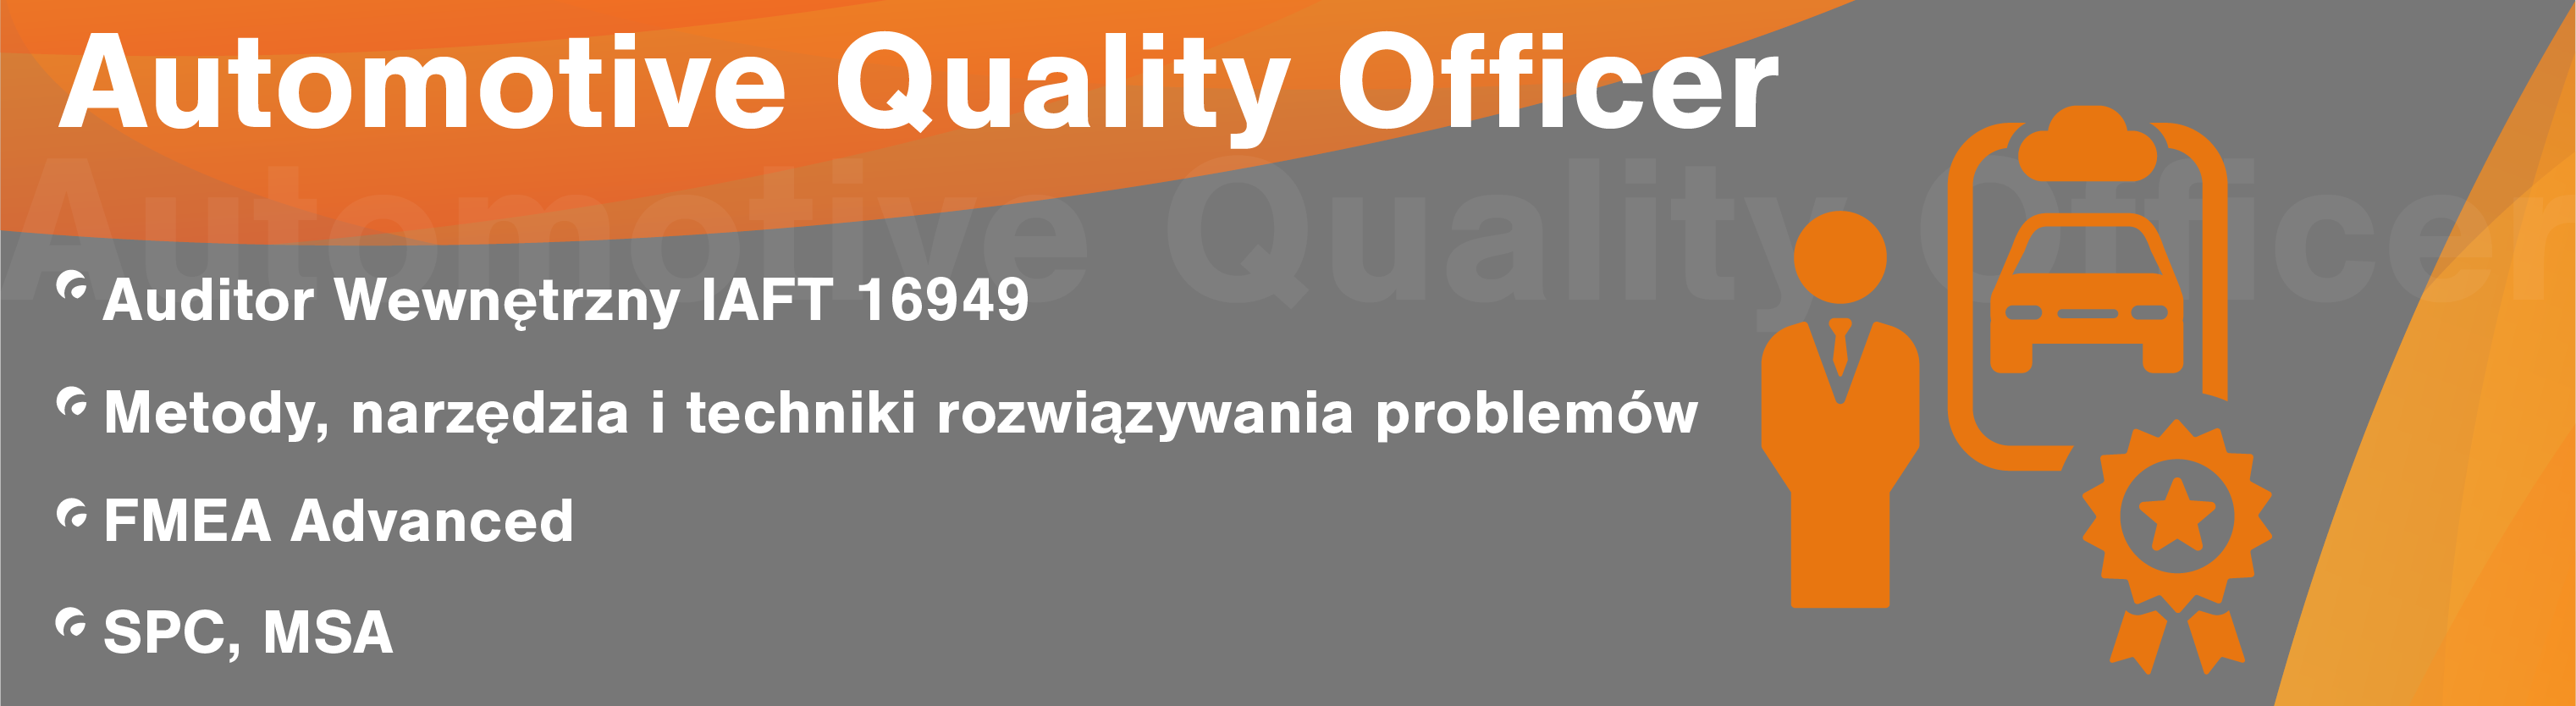 Pakiet Automotive Quality Officer